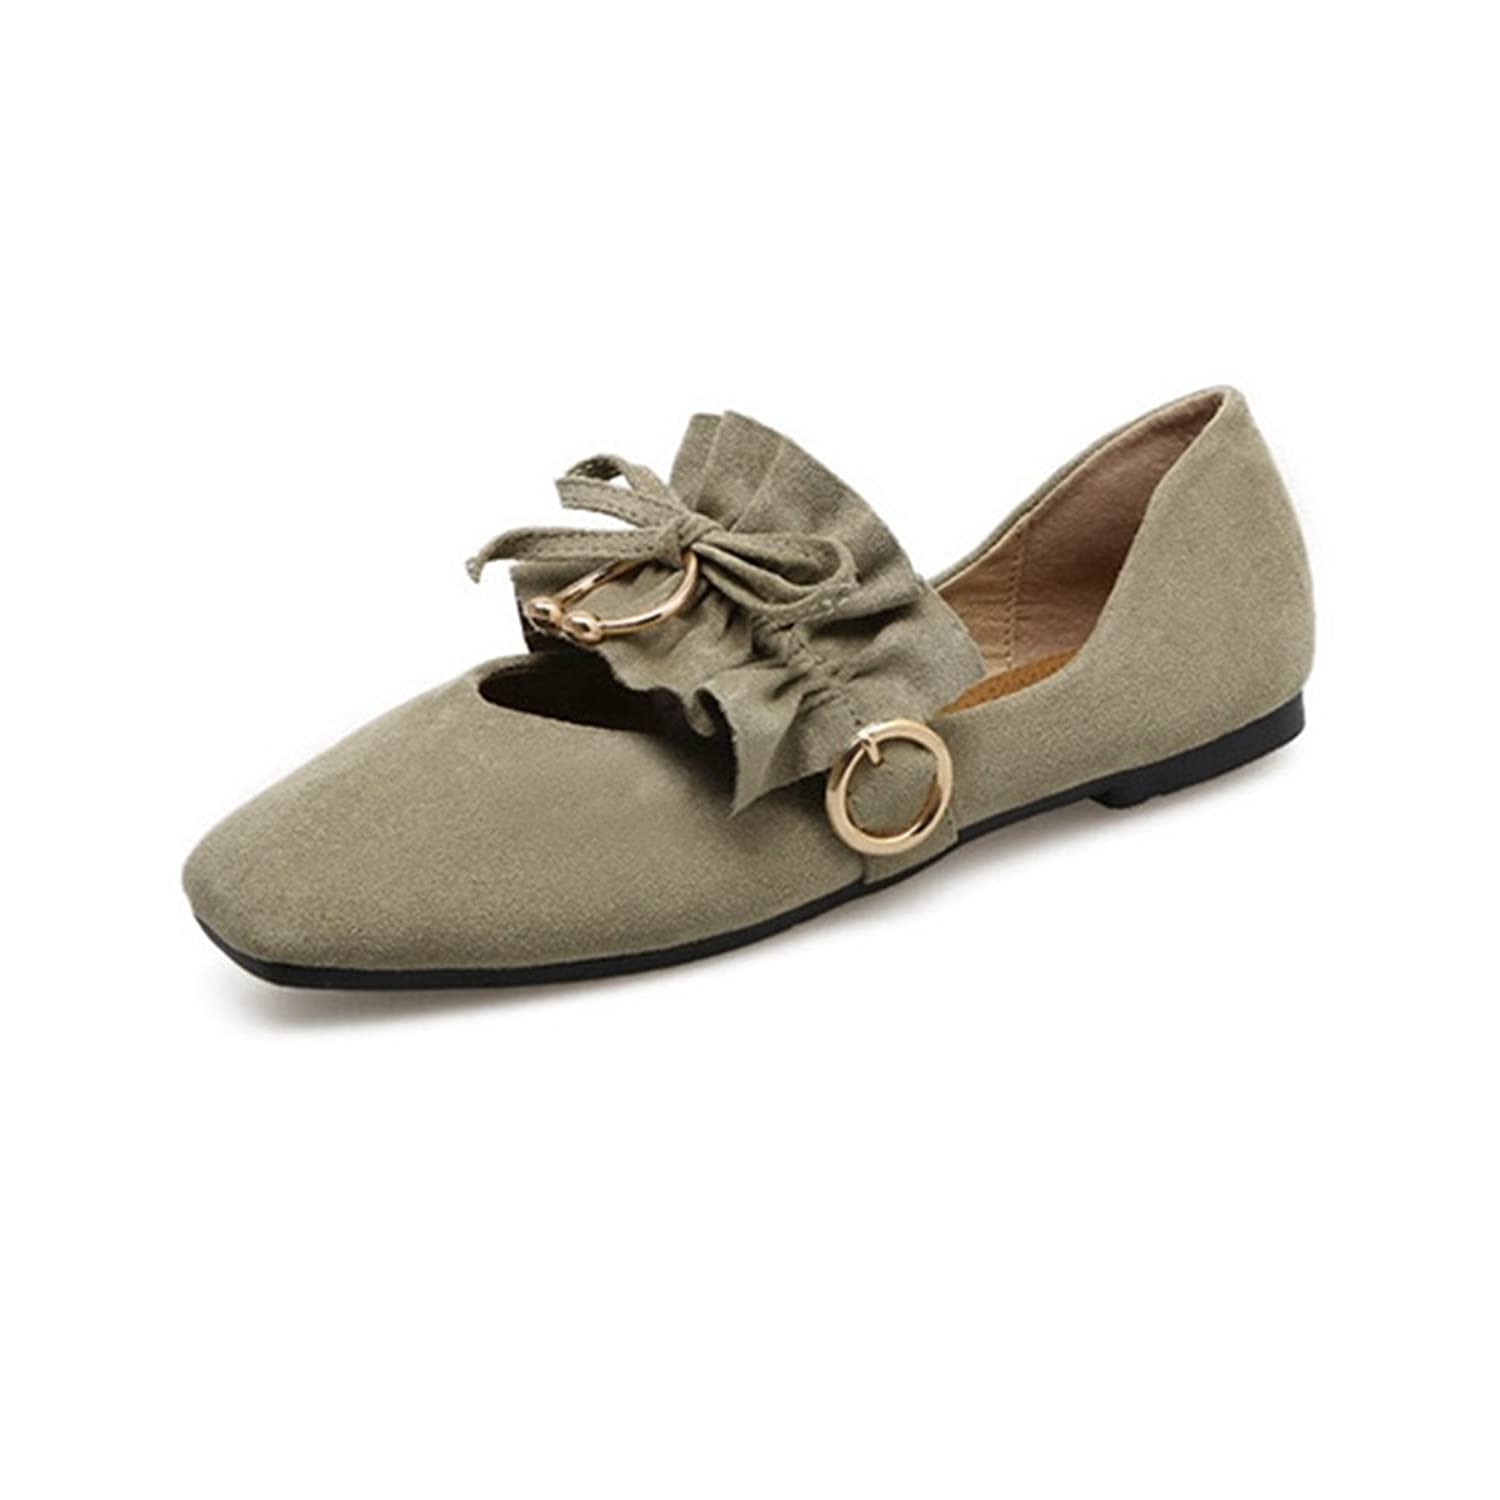 Giy Womens Retro Suede Square Toe Dress Loafers Flat Ballet Slip On